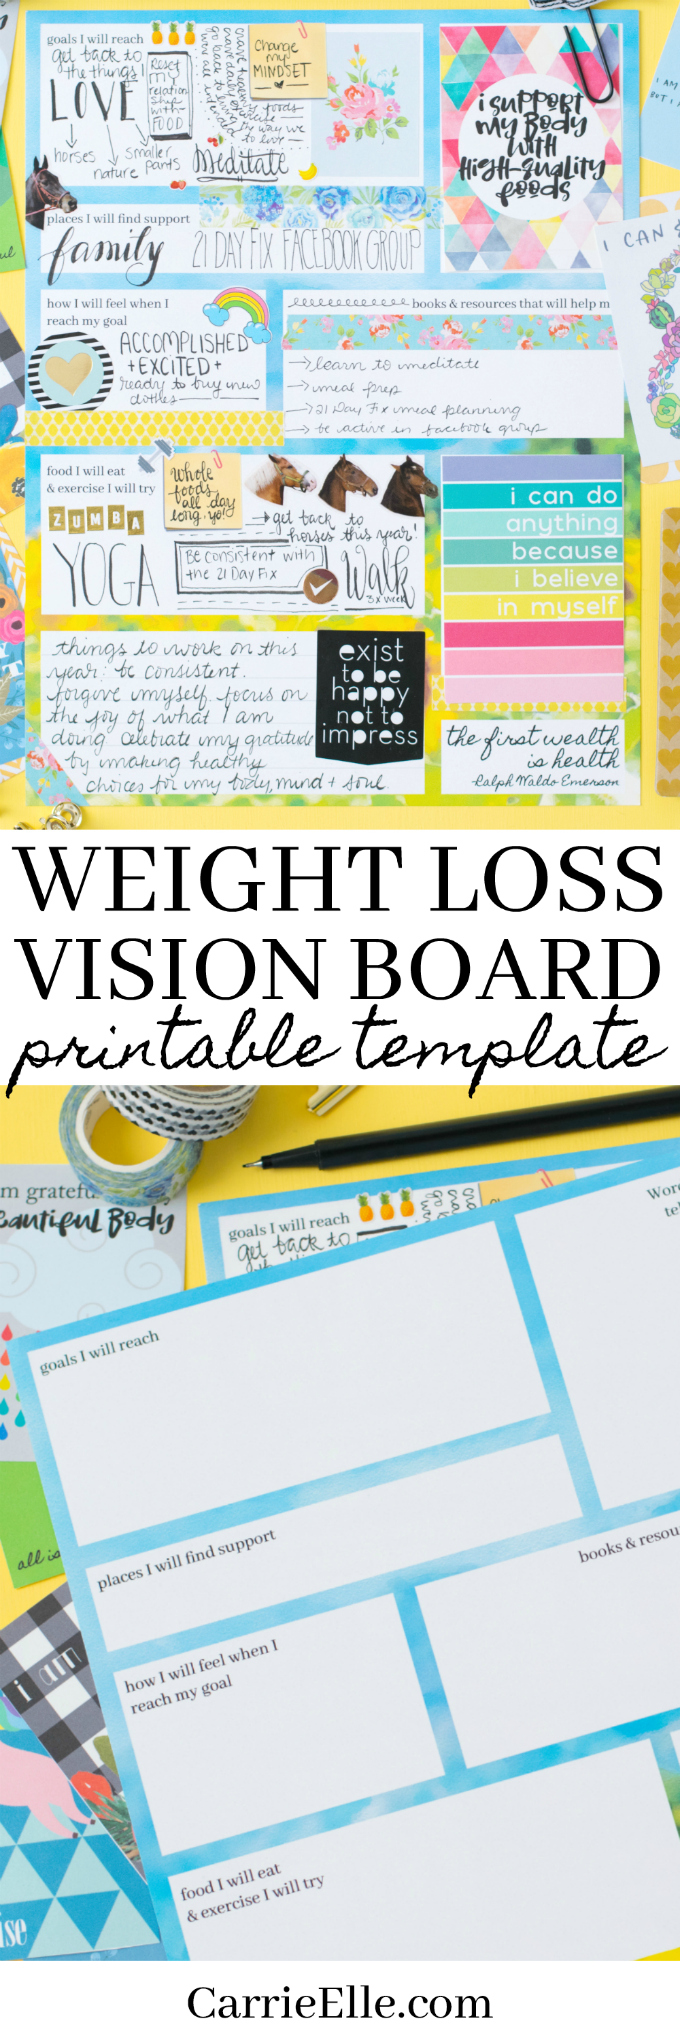 Printable weight loss vision board template carrie elle for Vision board templates free